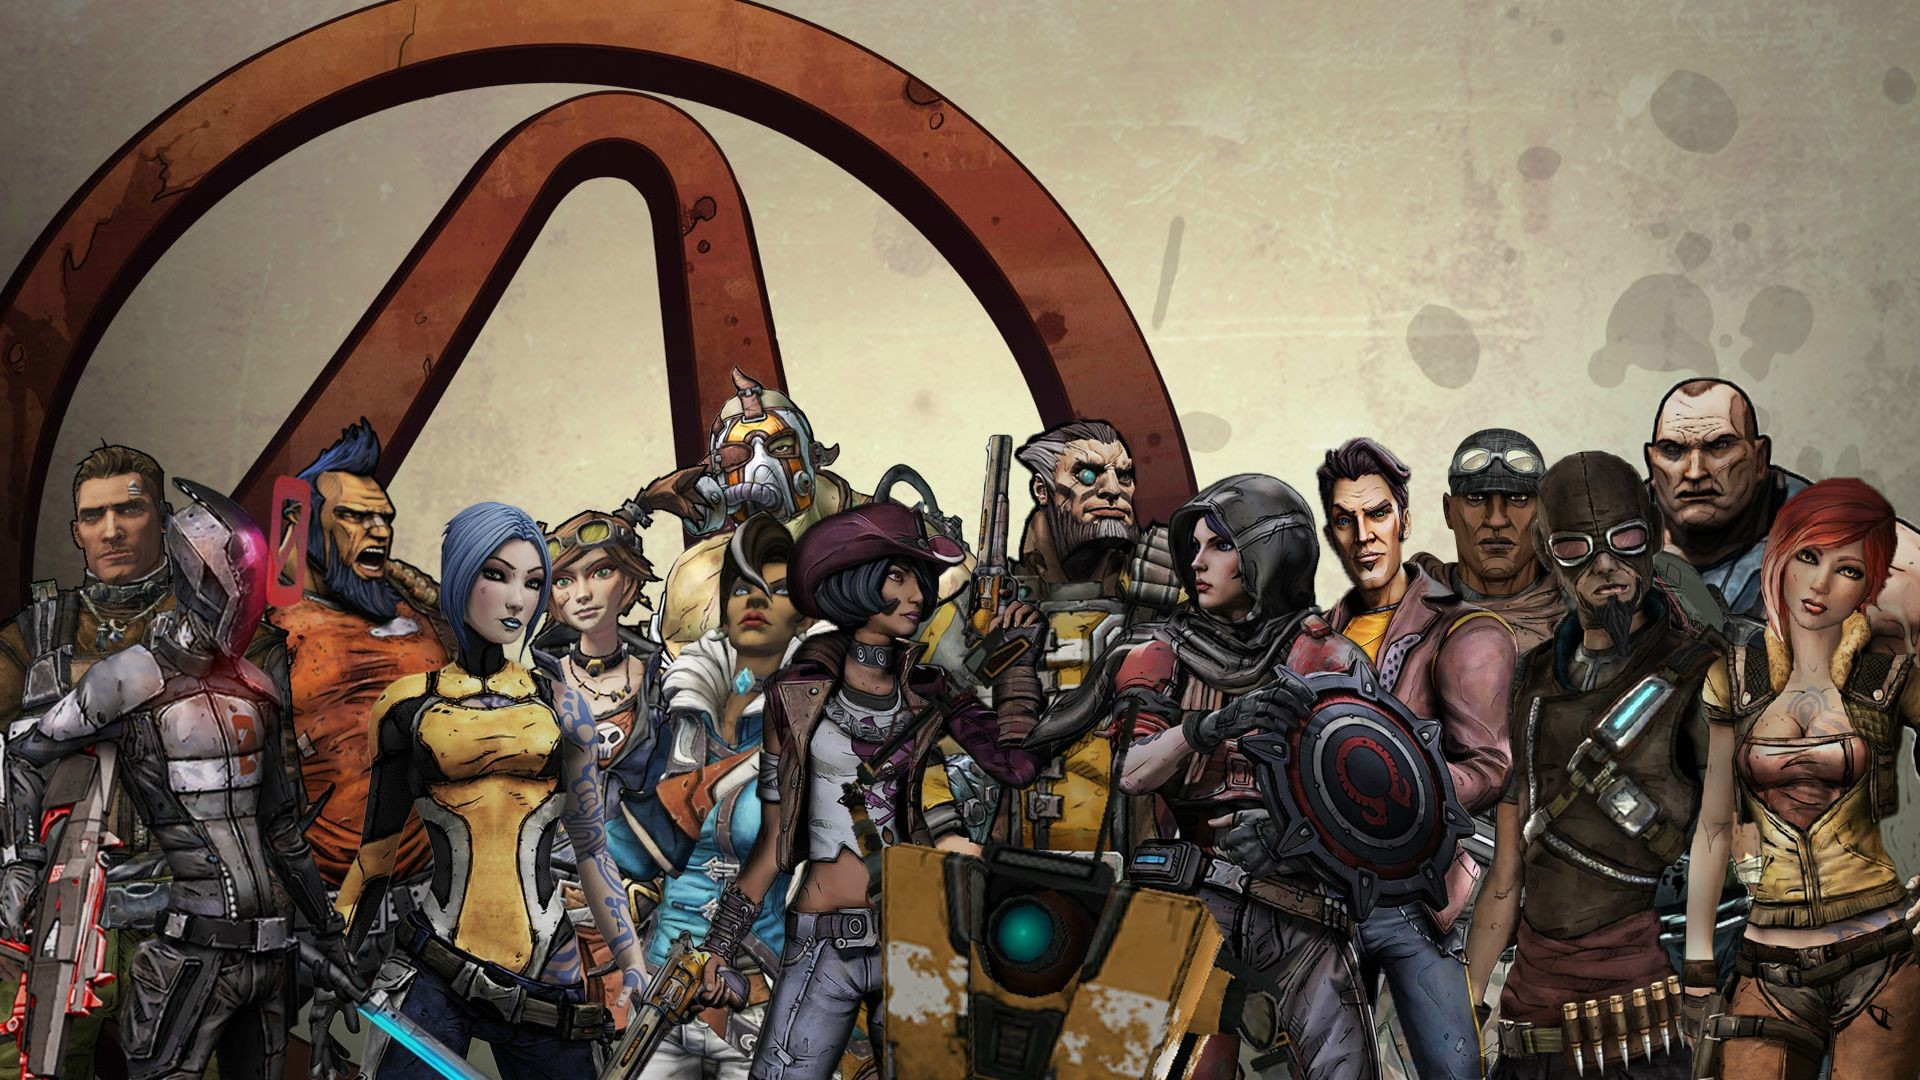 Borderlands 2 Background HD Mechromancer (80+ Images